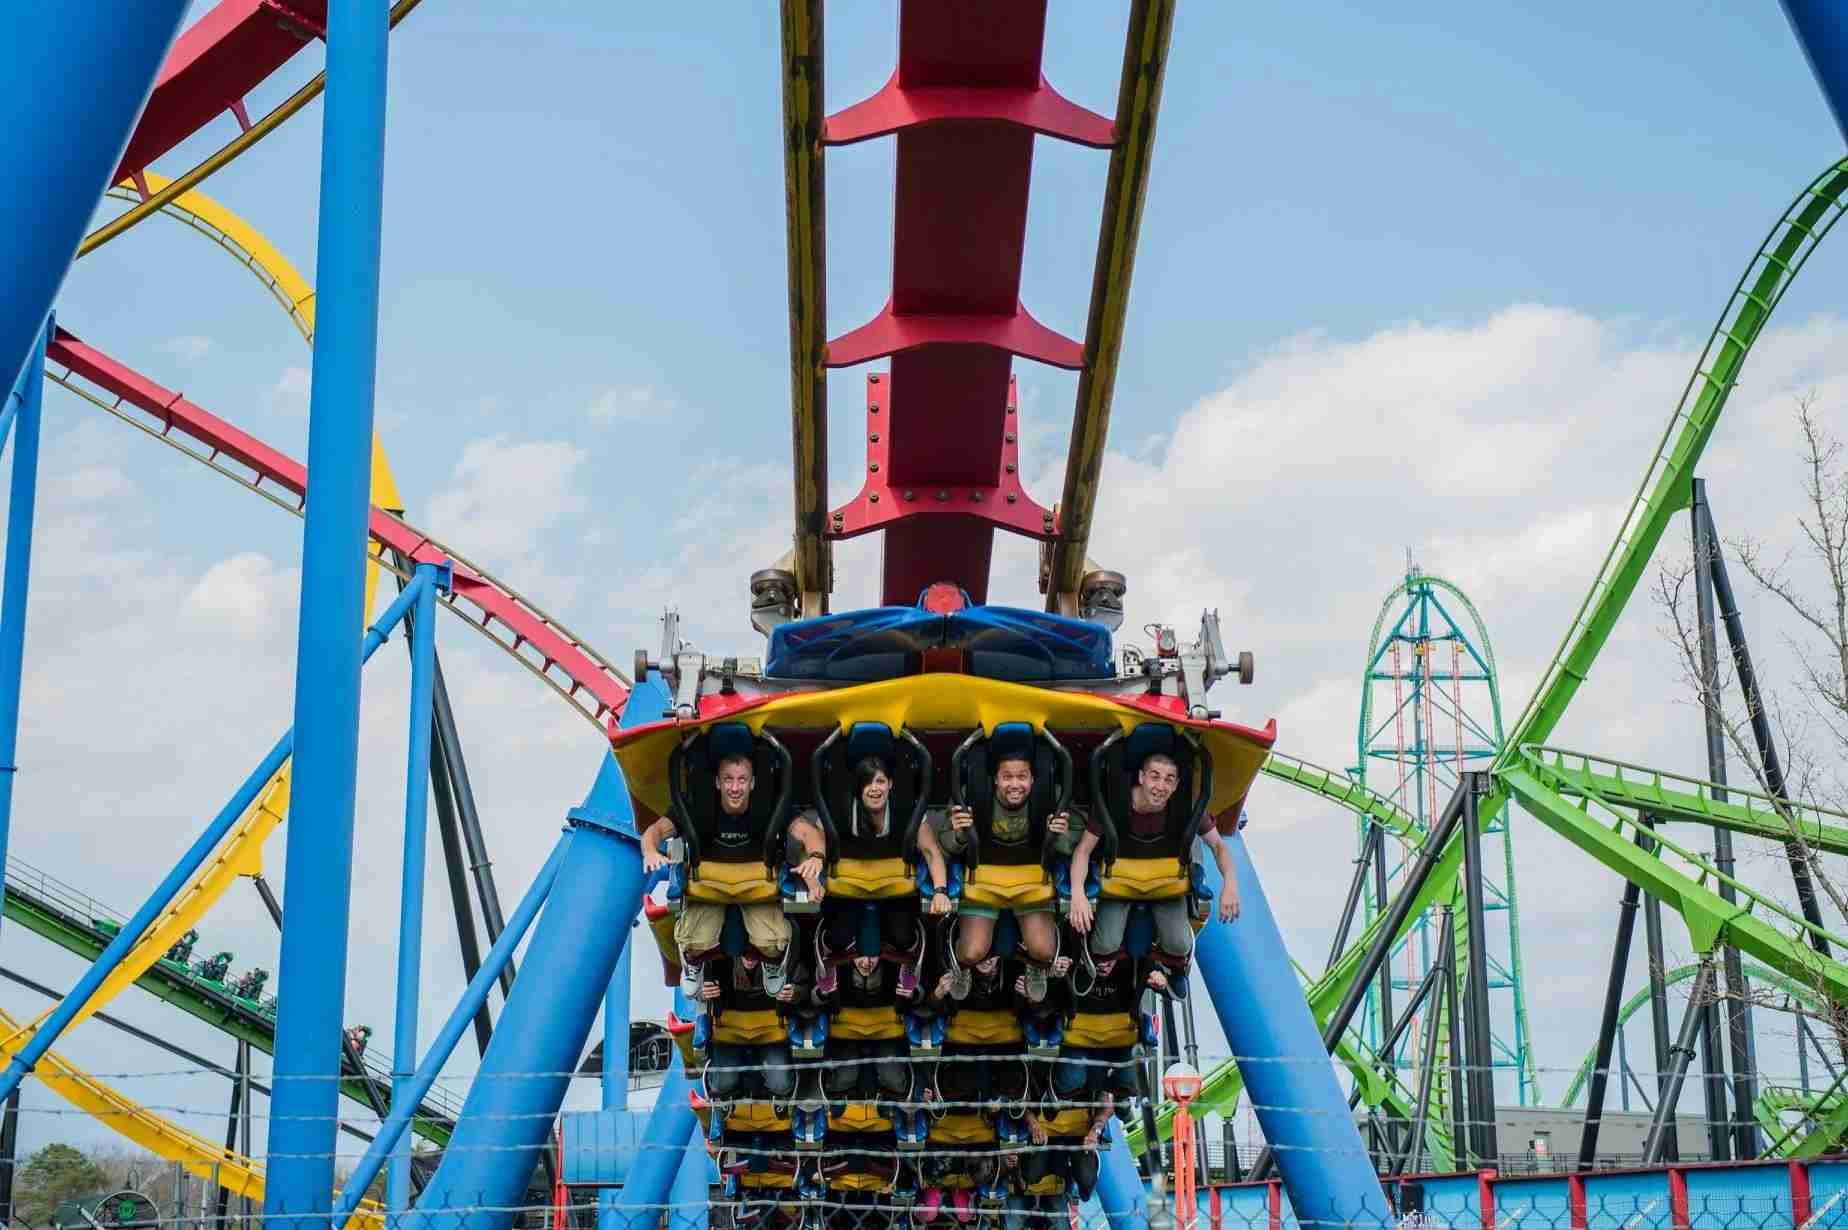 There are tons of thrill rides at Six Flags Great Adventure (Photo courtesy of Six Flags via Facebook)